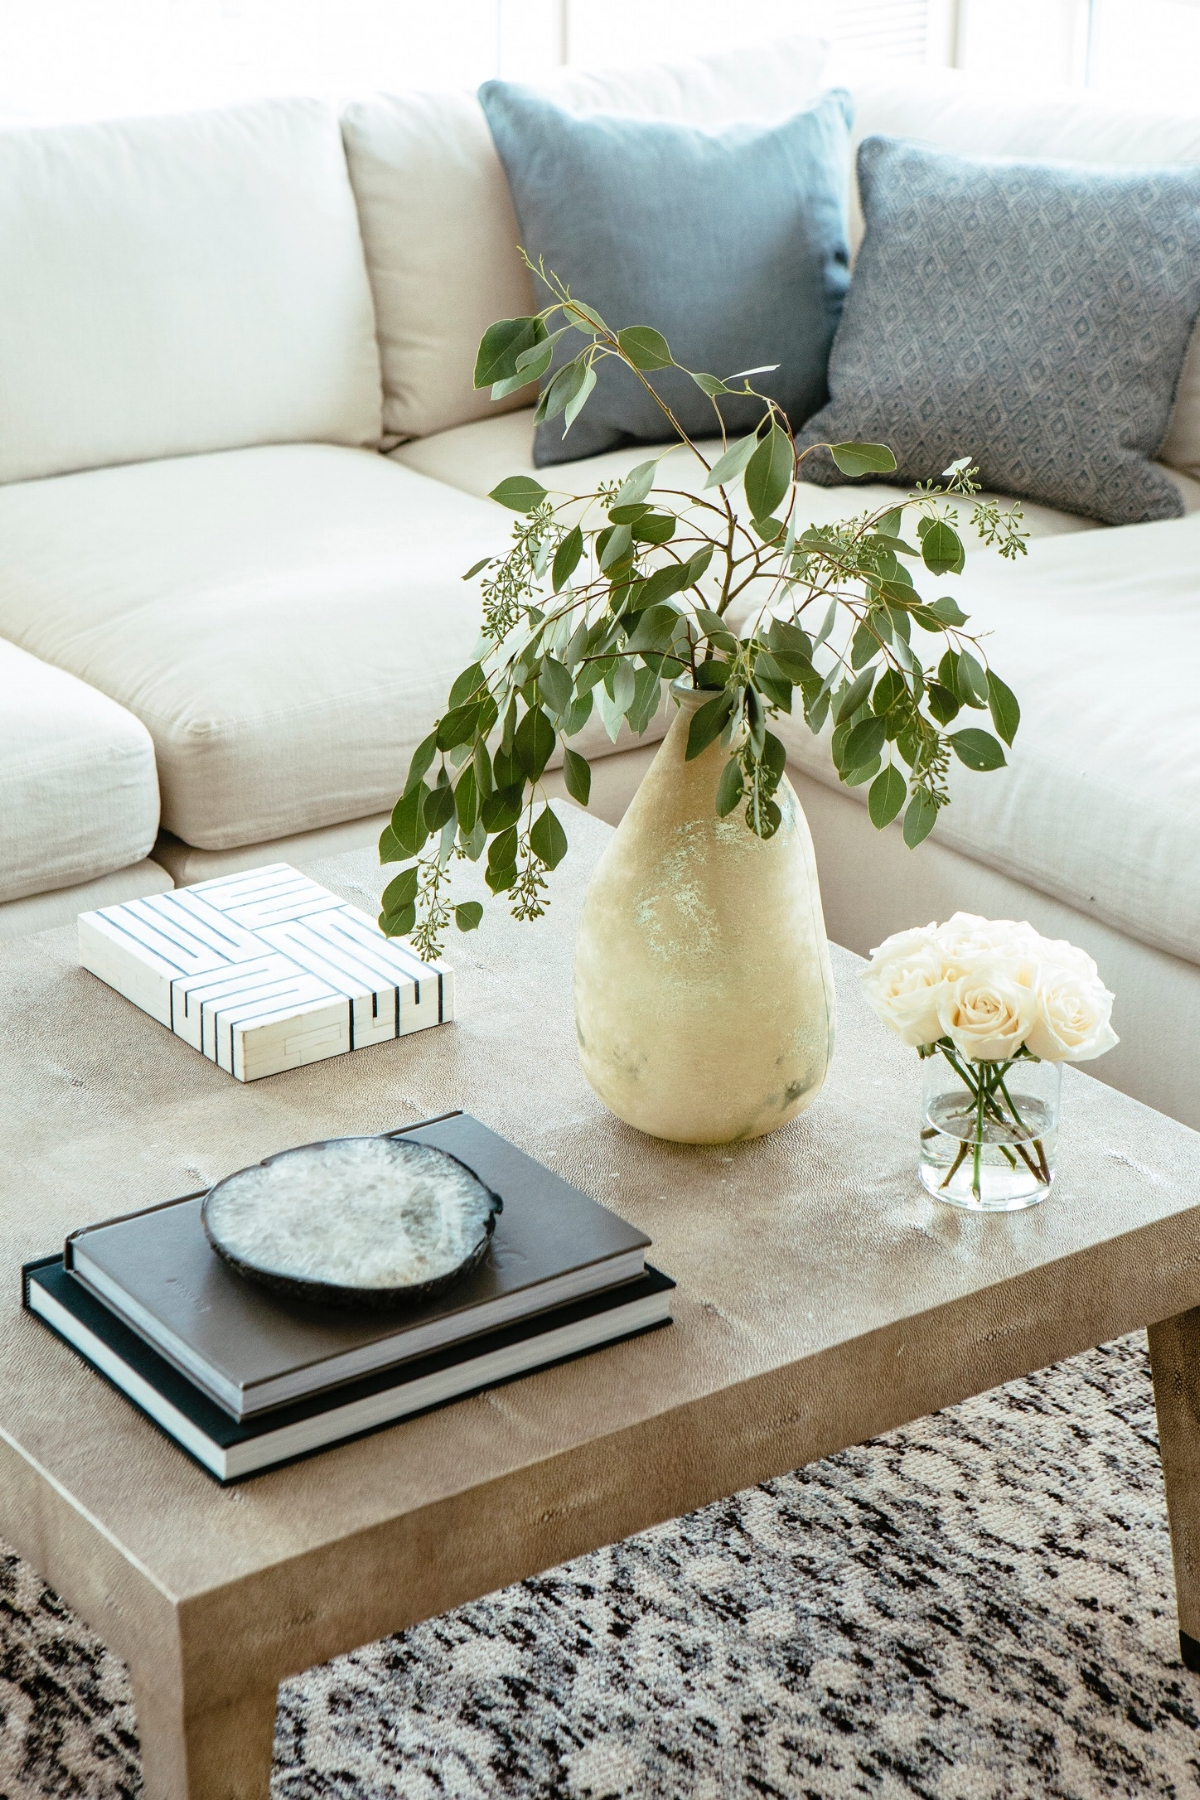 3. Natural Neutrals  - In the realm of nature, green is the strongest neutral there is. Adding in greenery in the form of plants, branches, trees, and flowers, will instantly pump up a neutral space and add an extra layer with little effort or money. Not only do natural elements like these bring in their own texture, imperfection, and beauty, but they also introduce an additional color without necessarily coming across as color. When clients have a space that just feels unfinished, I always suggest bringing in natural plant life — and it's always the perfect finishing touch. Image from JBD Chicago Project by Heather Talbert